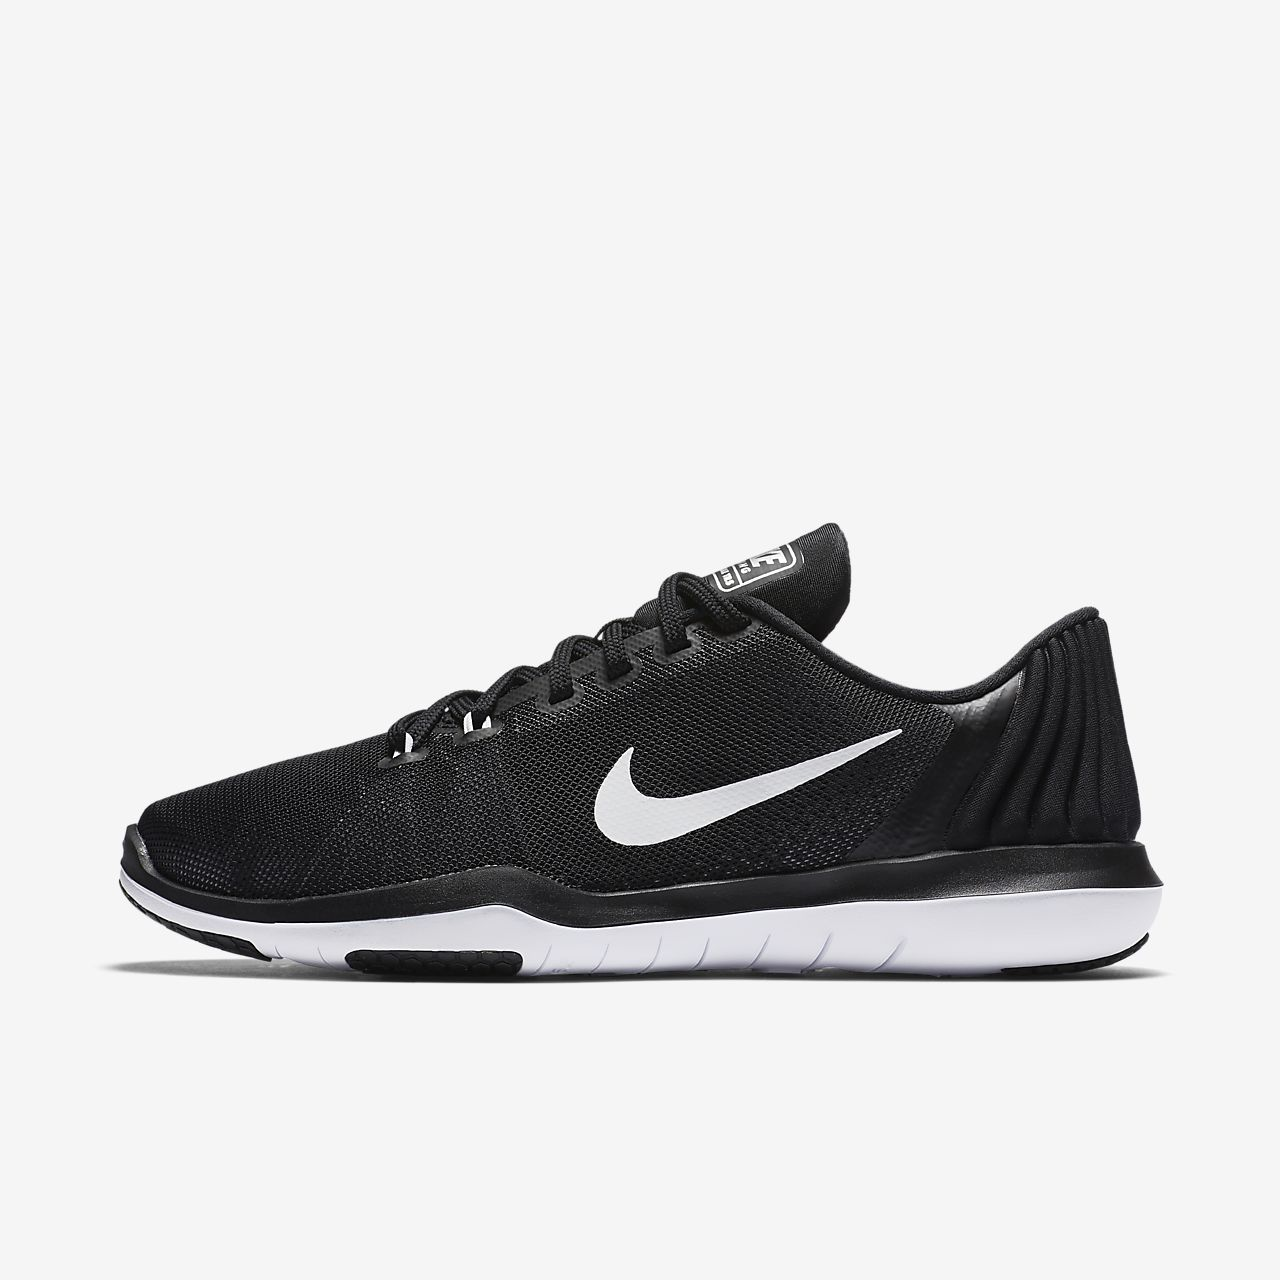 Nike Training Men Black/White/Green Model:354